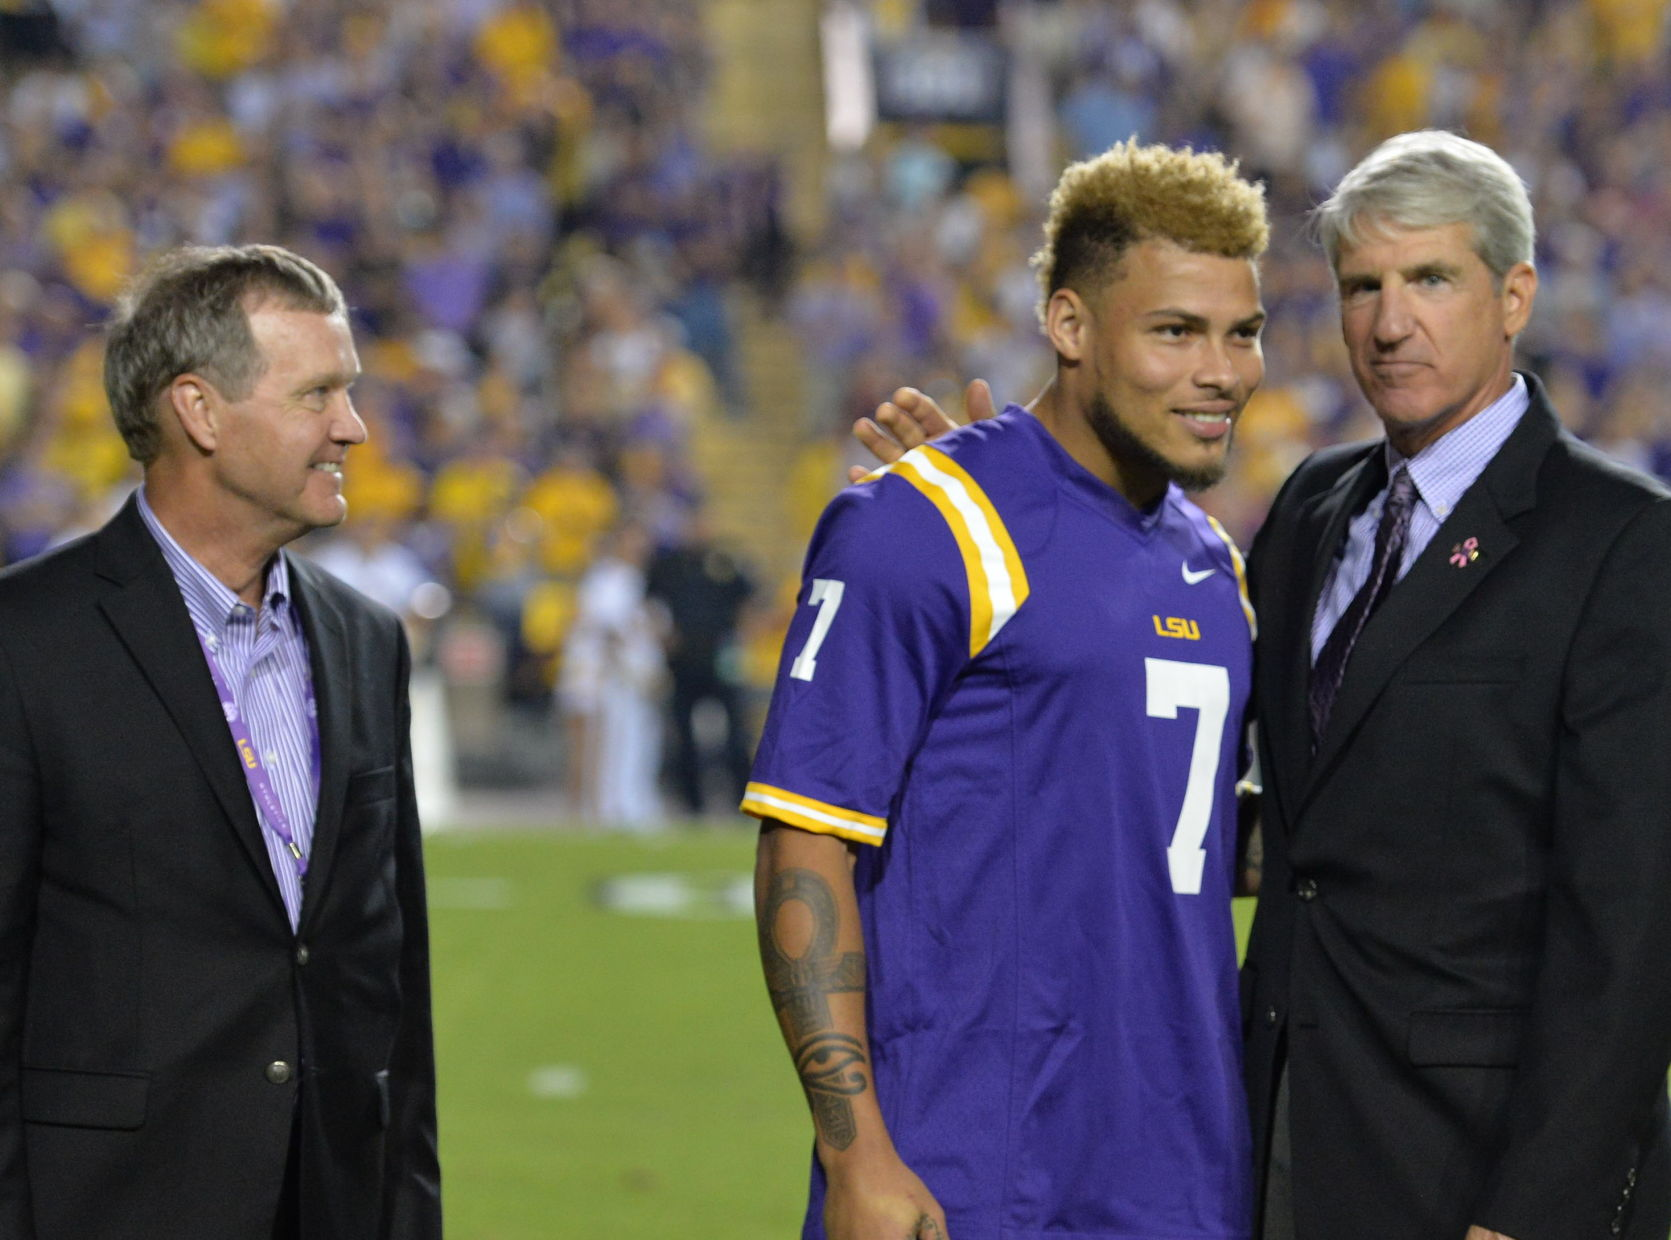 LSU's players' lounge being named after former DB Tyrann Mathieu ...